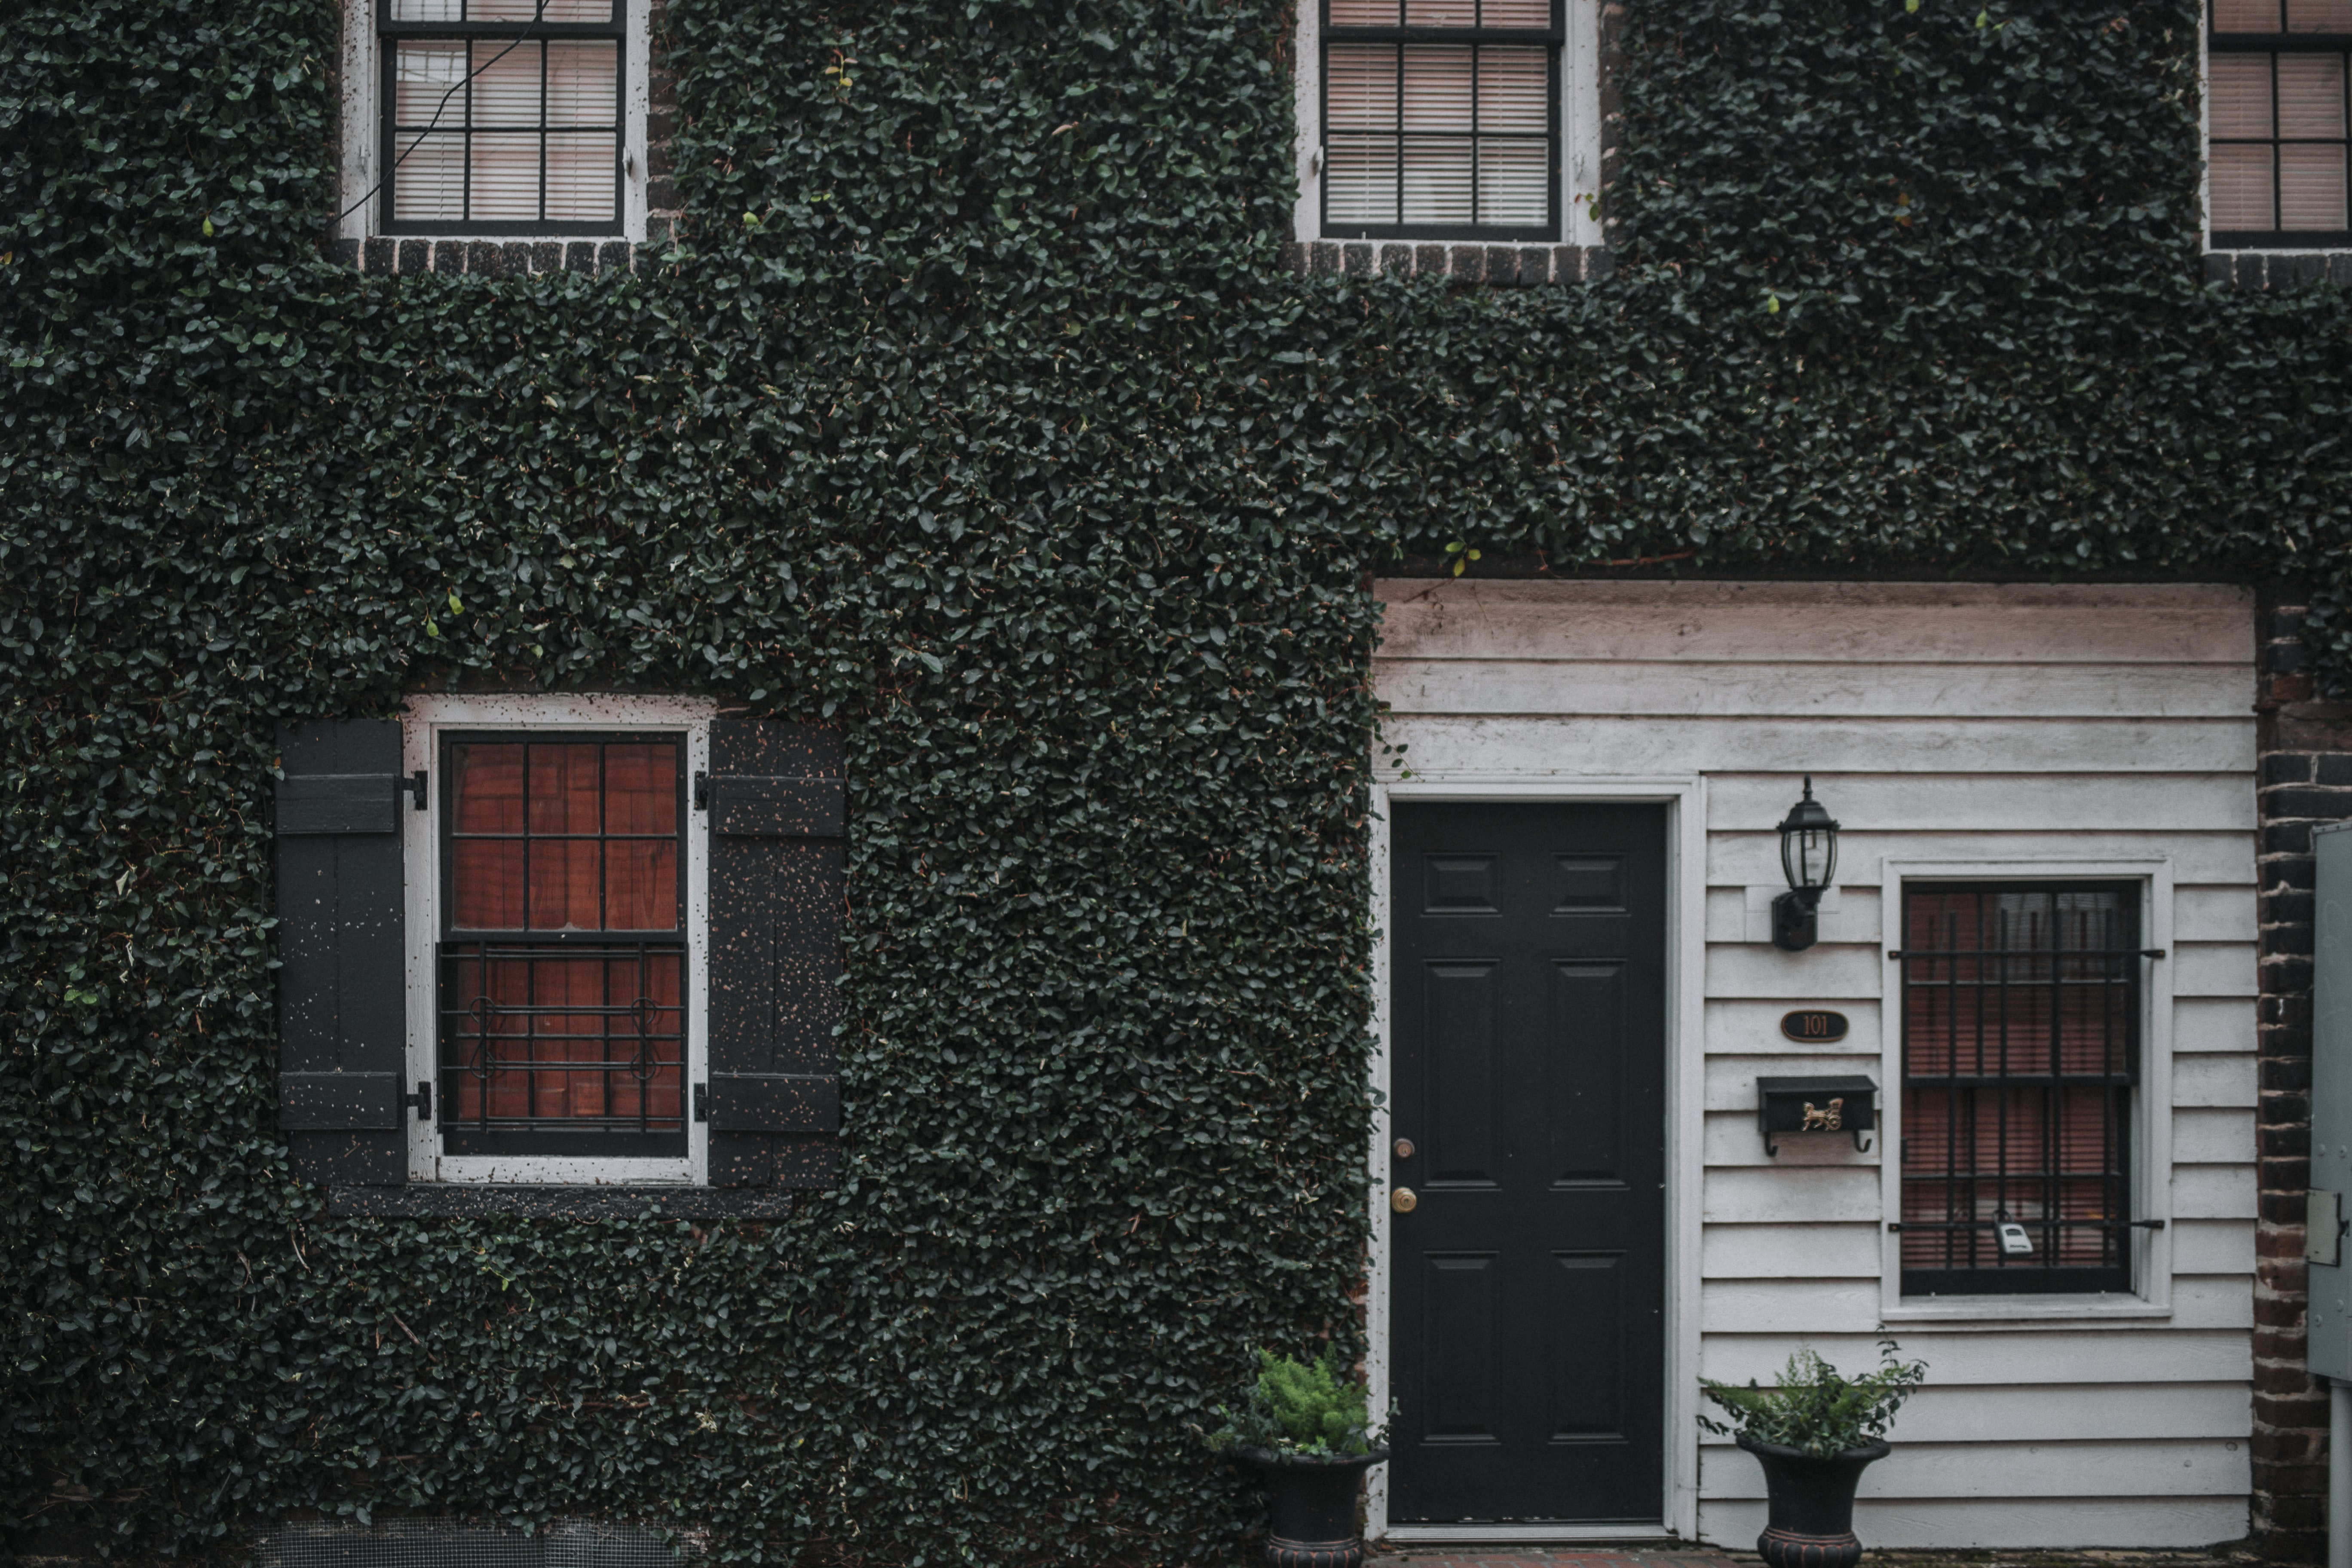 The front wall of an elegant house covered with a rich growth of ivy